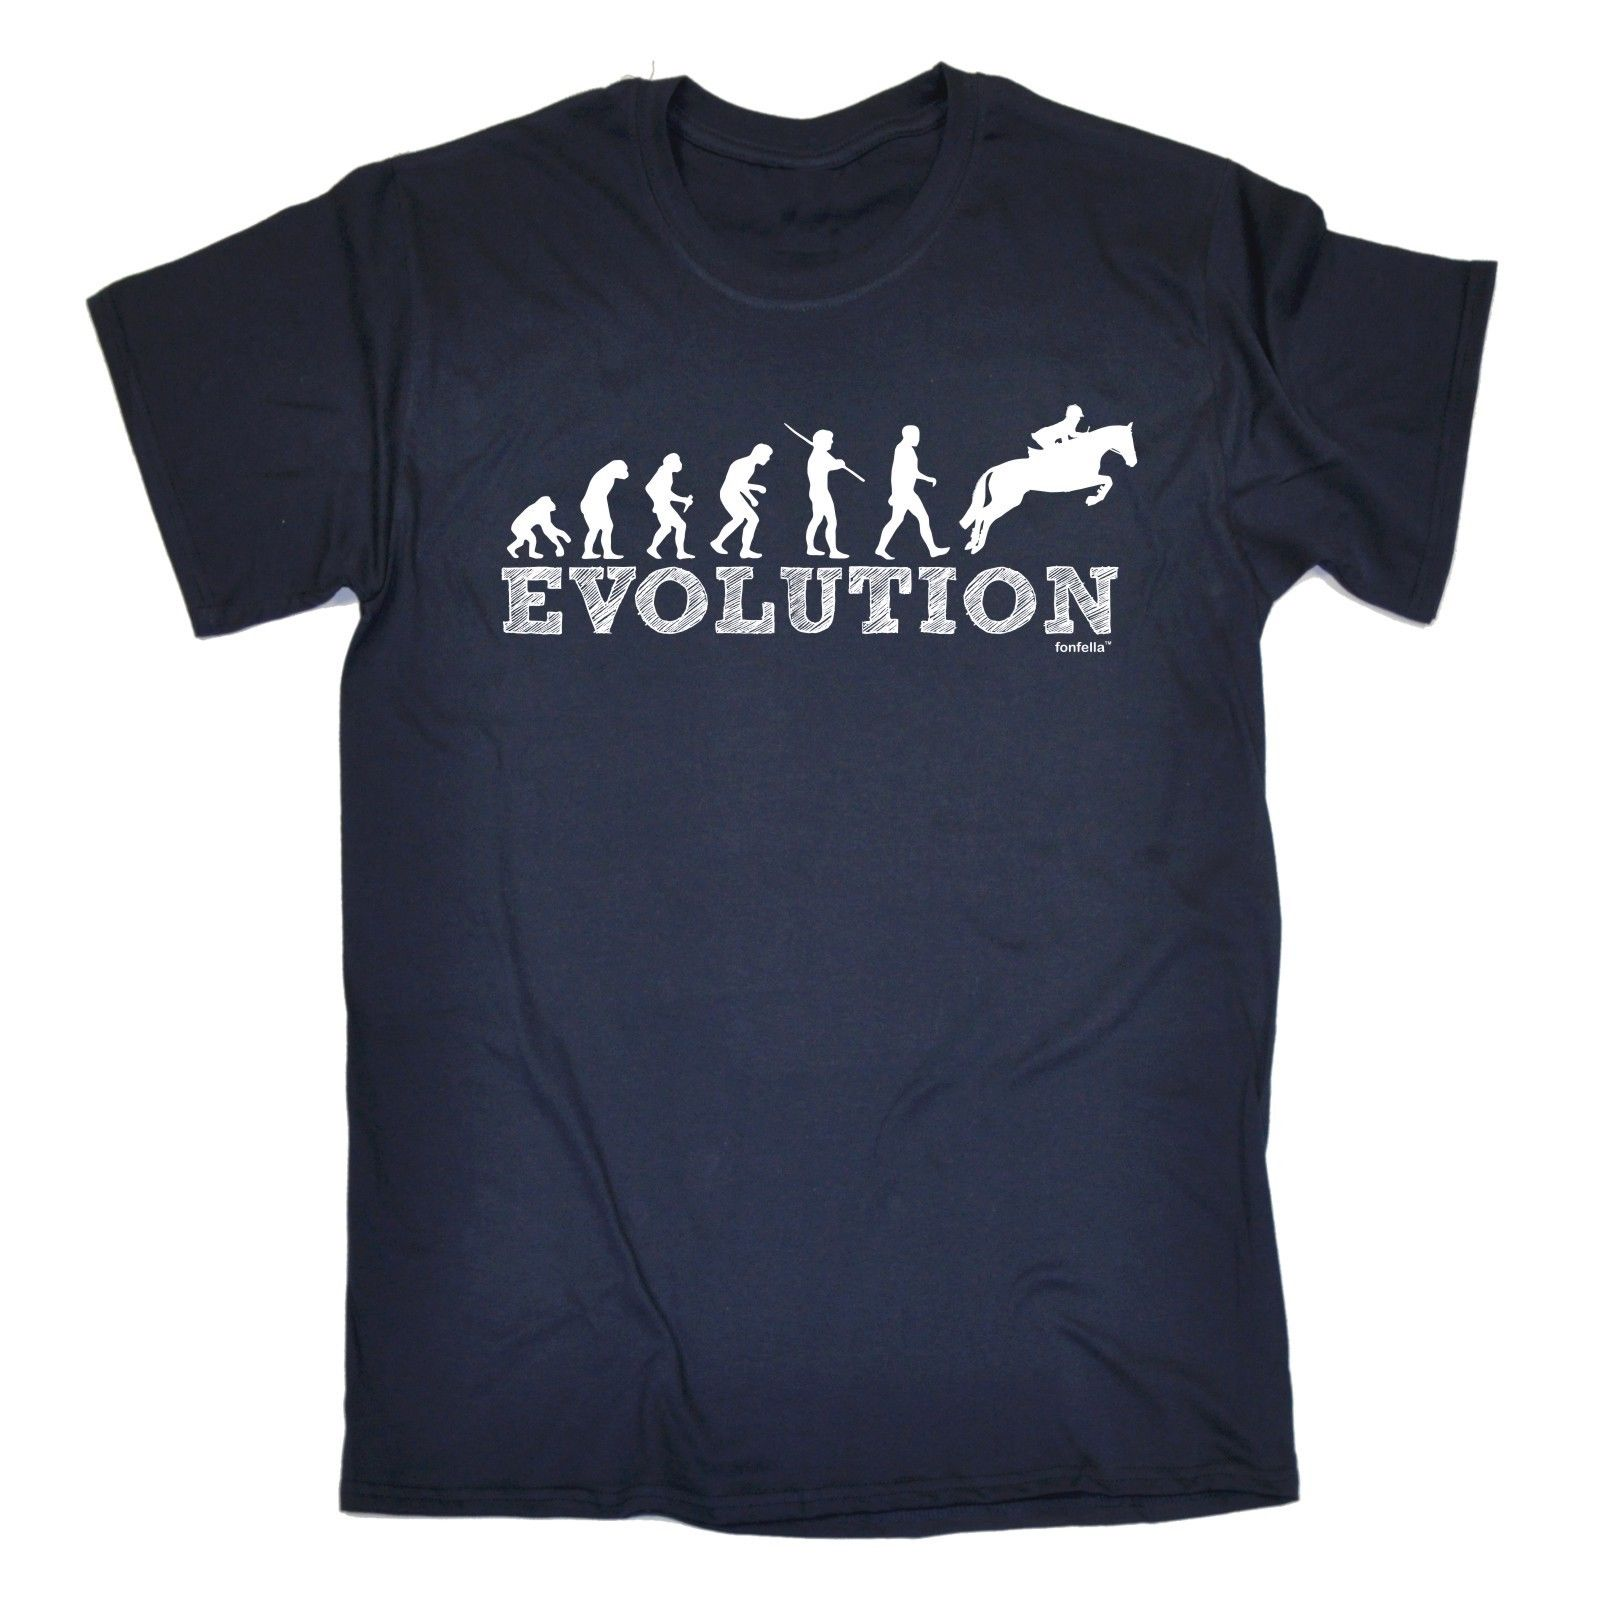 Evolution Horse Jumping T-SHIRT Show Riding Ride Equestrian Funny Birthday Gift Brand Cotton Men Clothing Male Slim Fit T Shirt 1